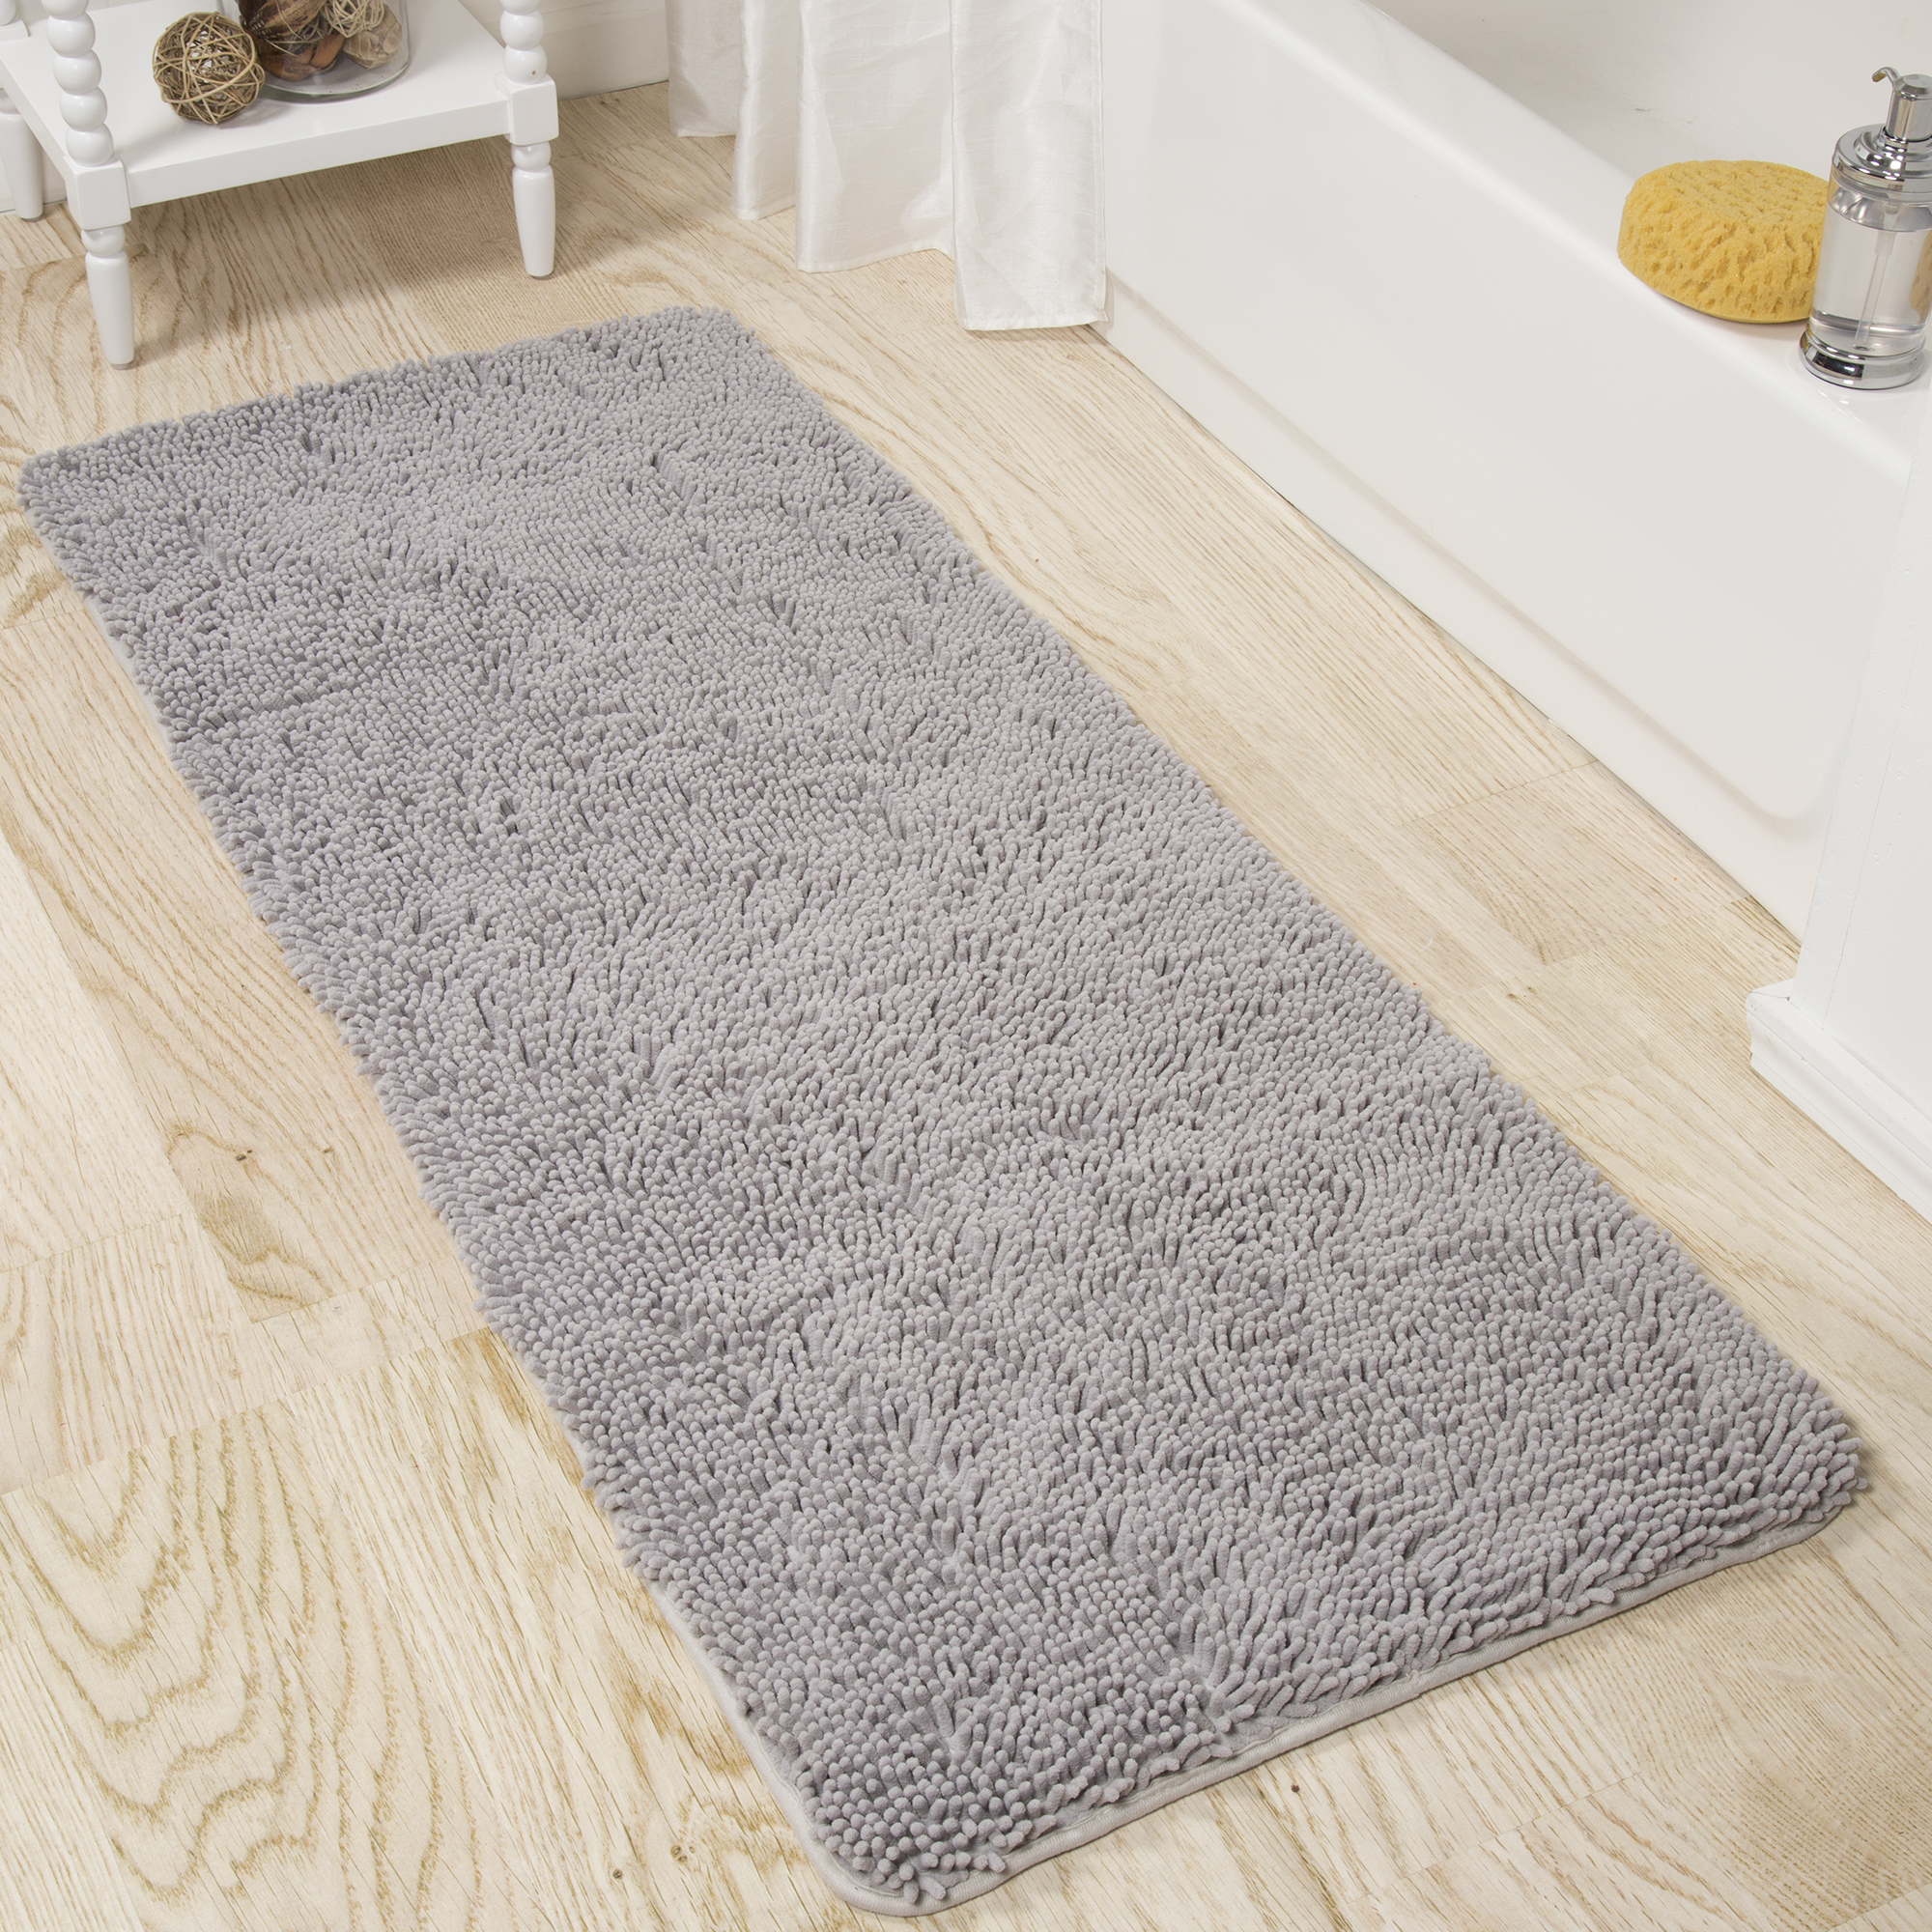 Somerset Home Memory Foam Somerset Homeag Bath Mat 2-feet by 5-feet - Grey